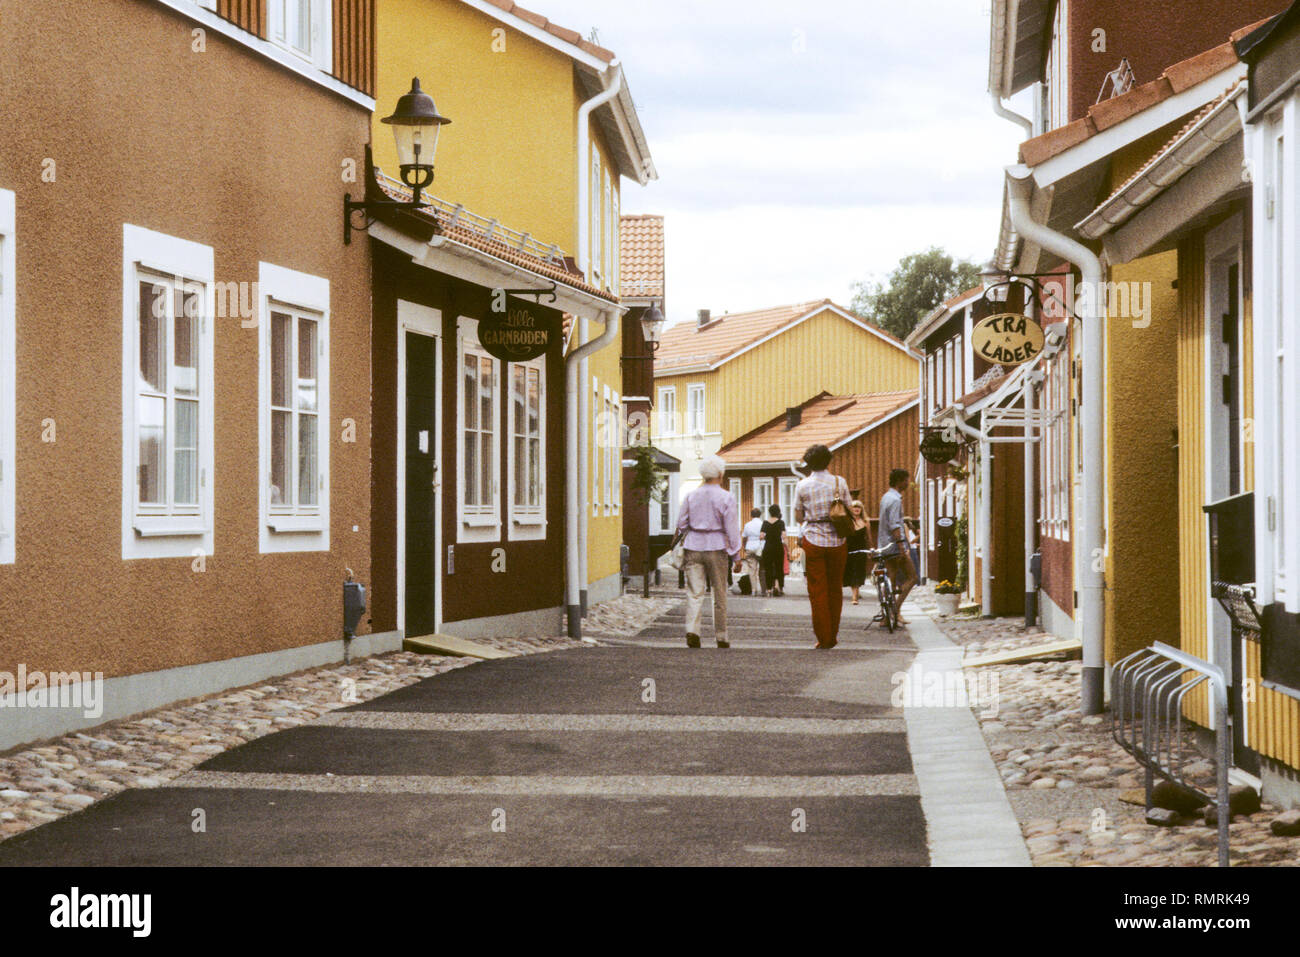 MORA Dalarna the city that is the goal of the Vasaloppet in the  winters - Stock Image